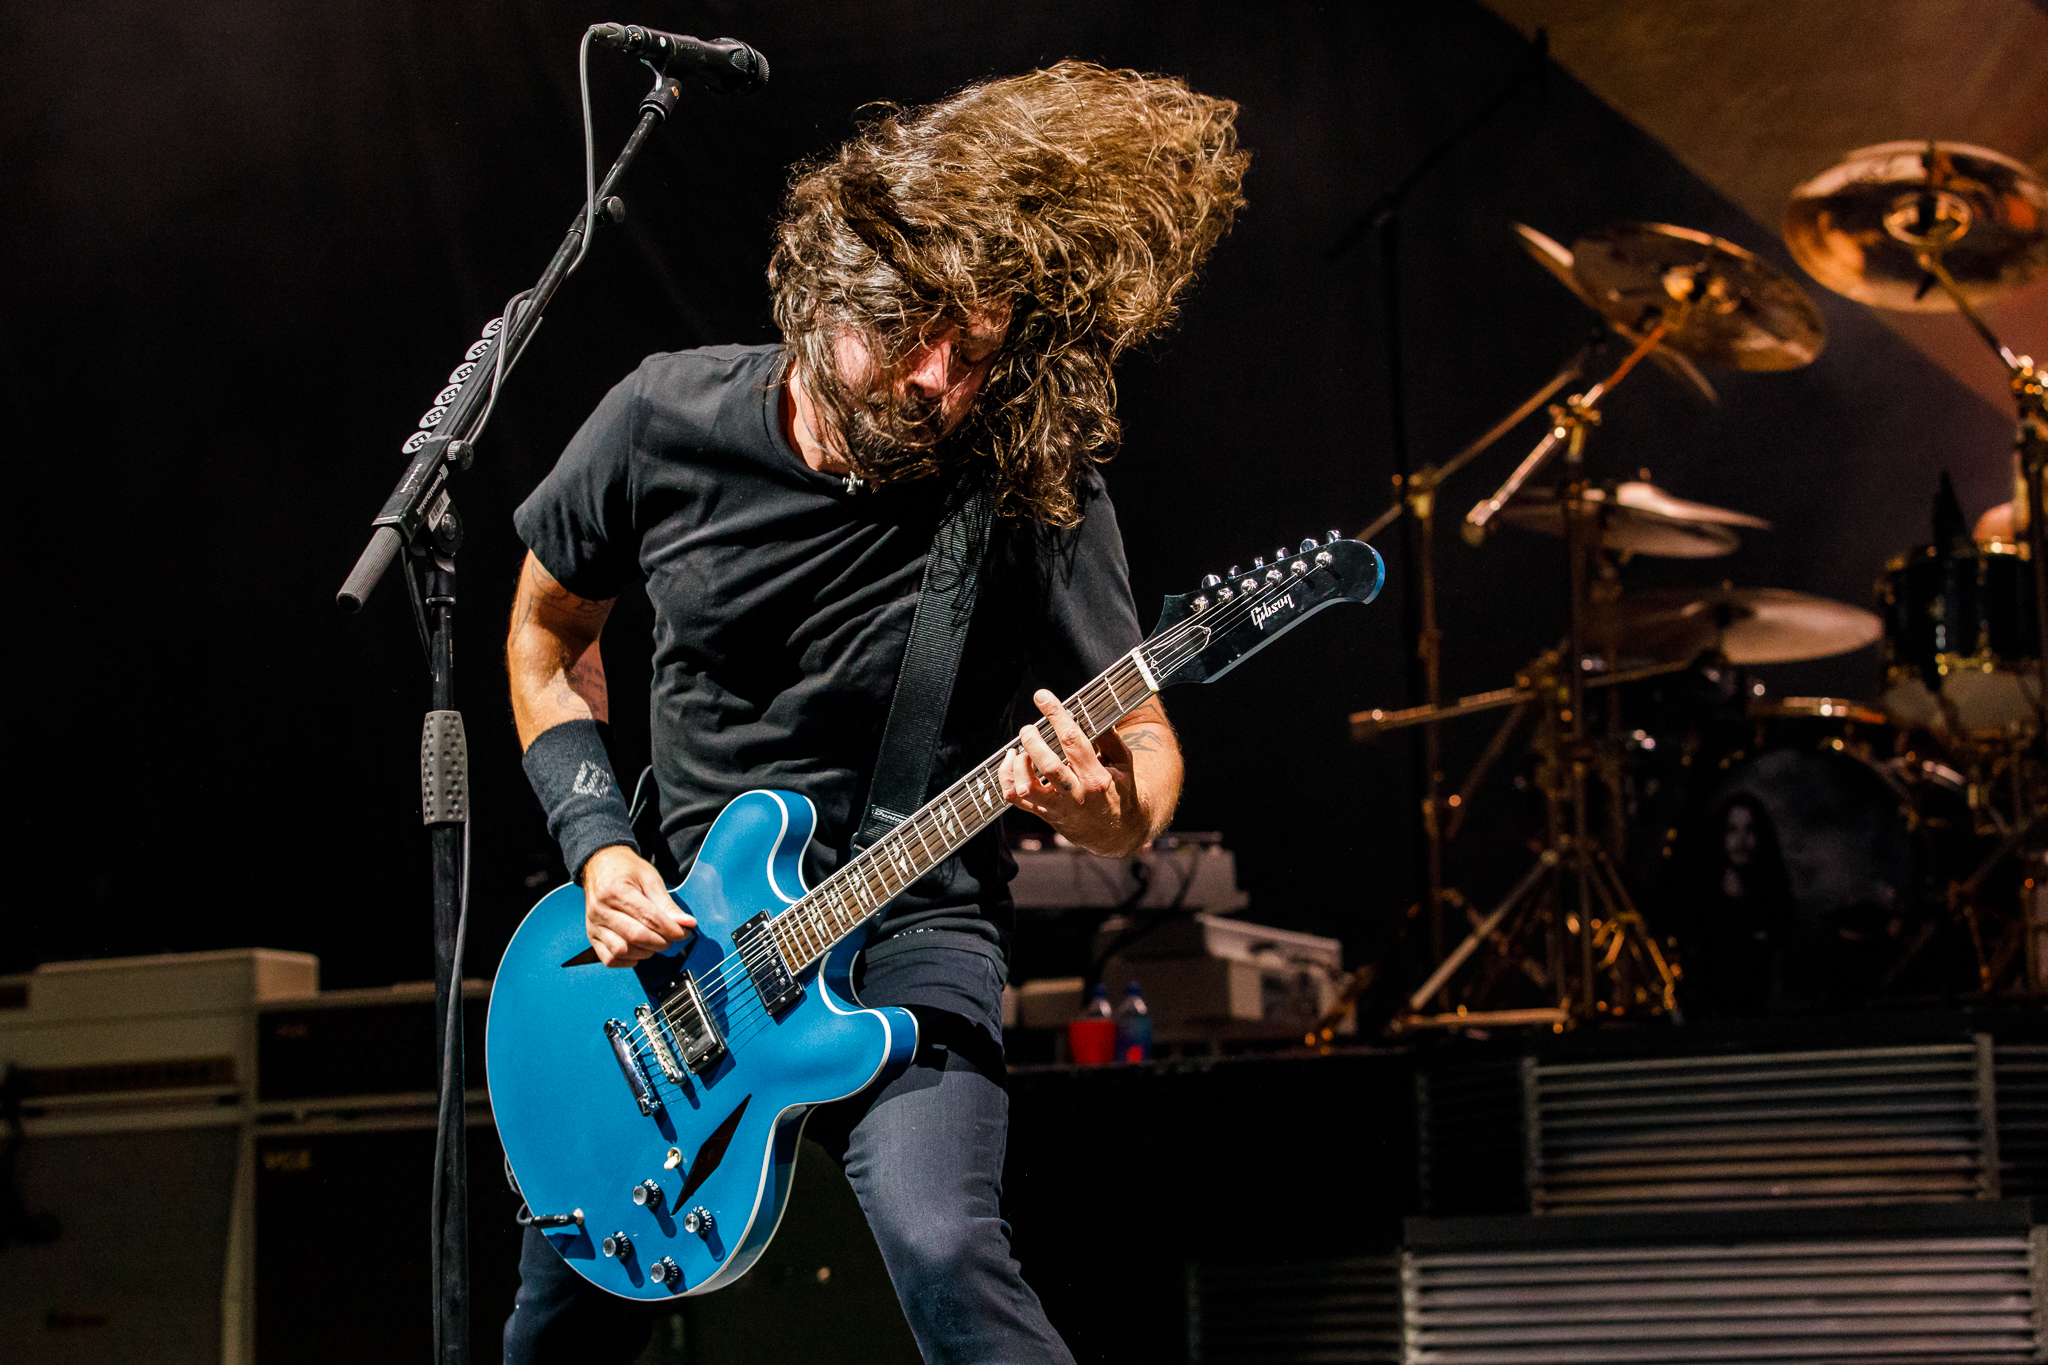 Foo Fighters performing at The Anthem in Washington, DC on October 12th, 2017 (photo by Matt Condon /  @arcane93 )